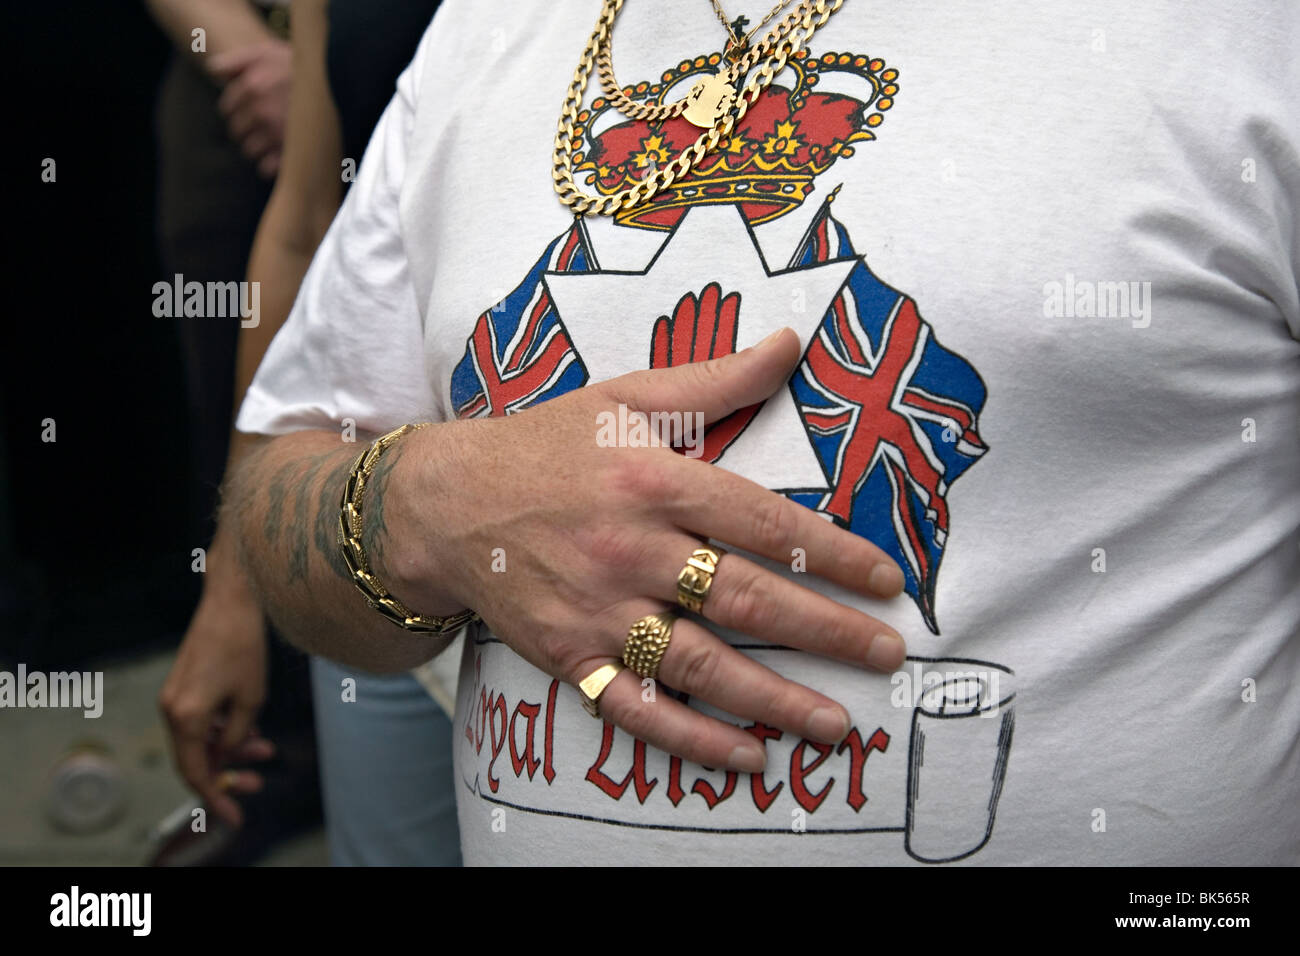 a person on an orange walk in london - Stock Image